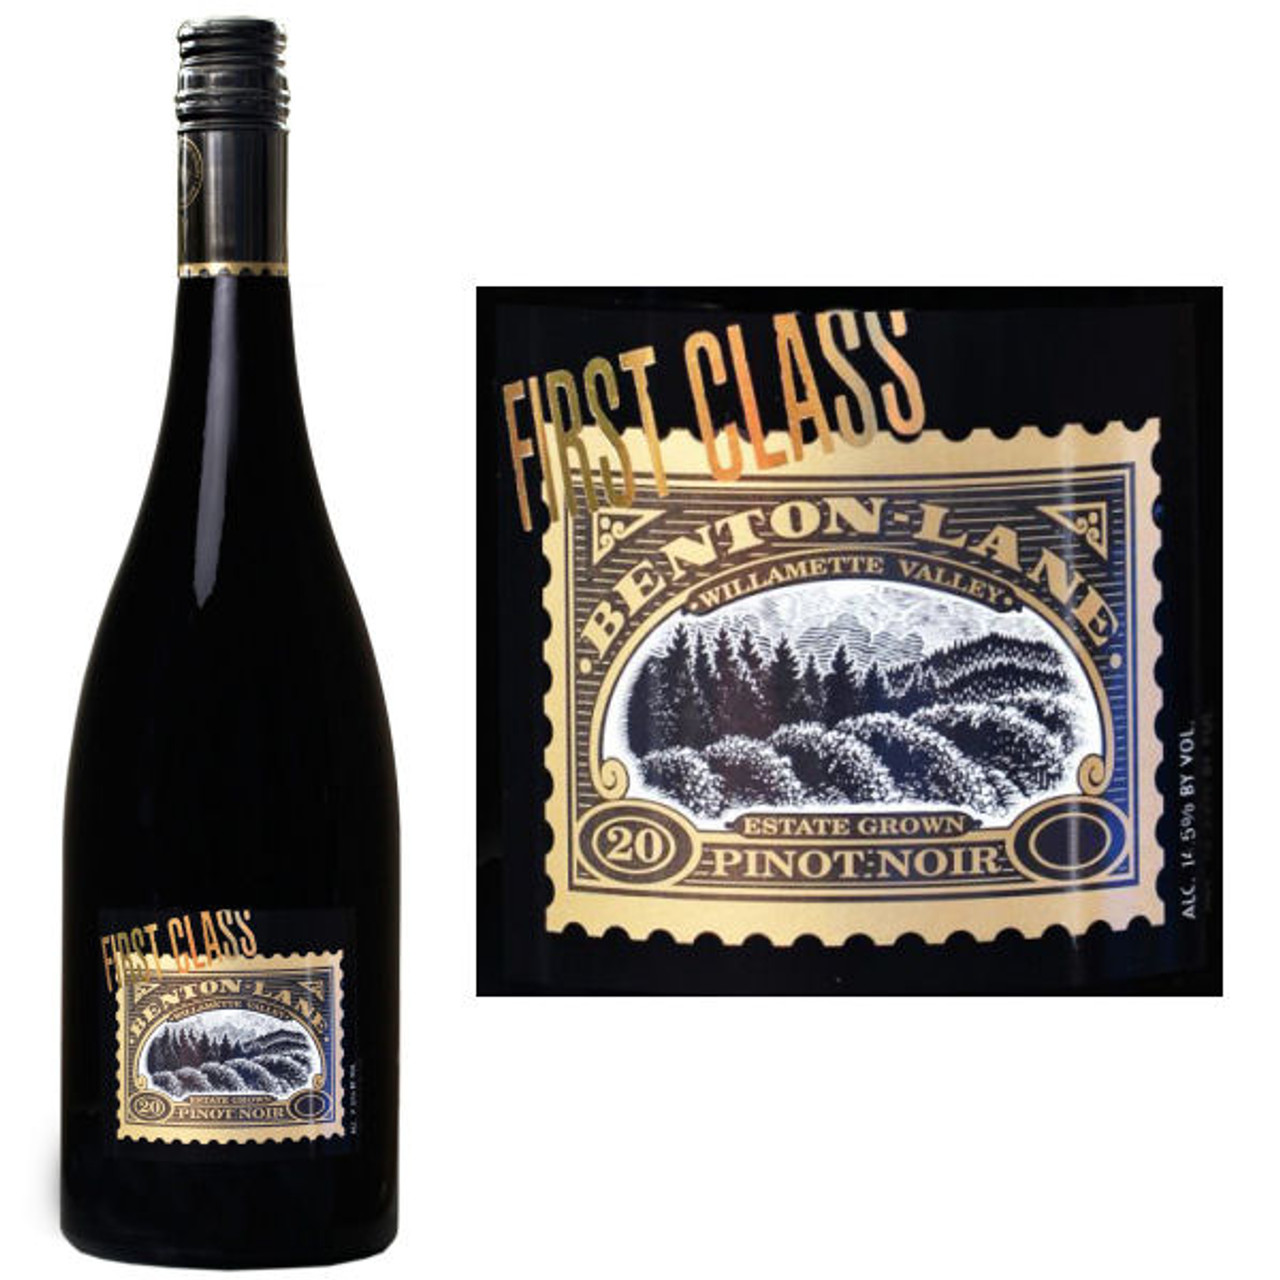 Benton-Lane First Class Willamette Pinot Noir Oregon